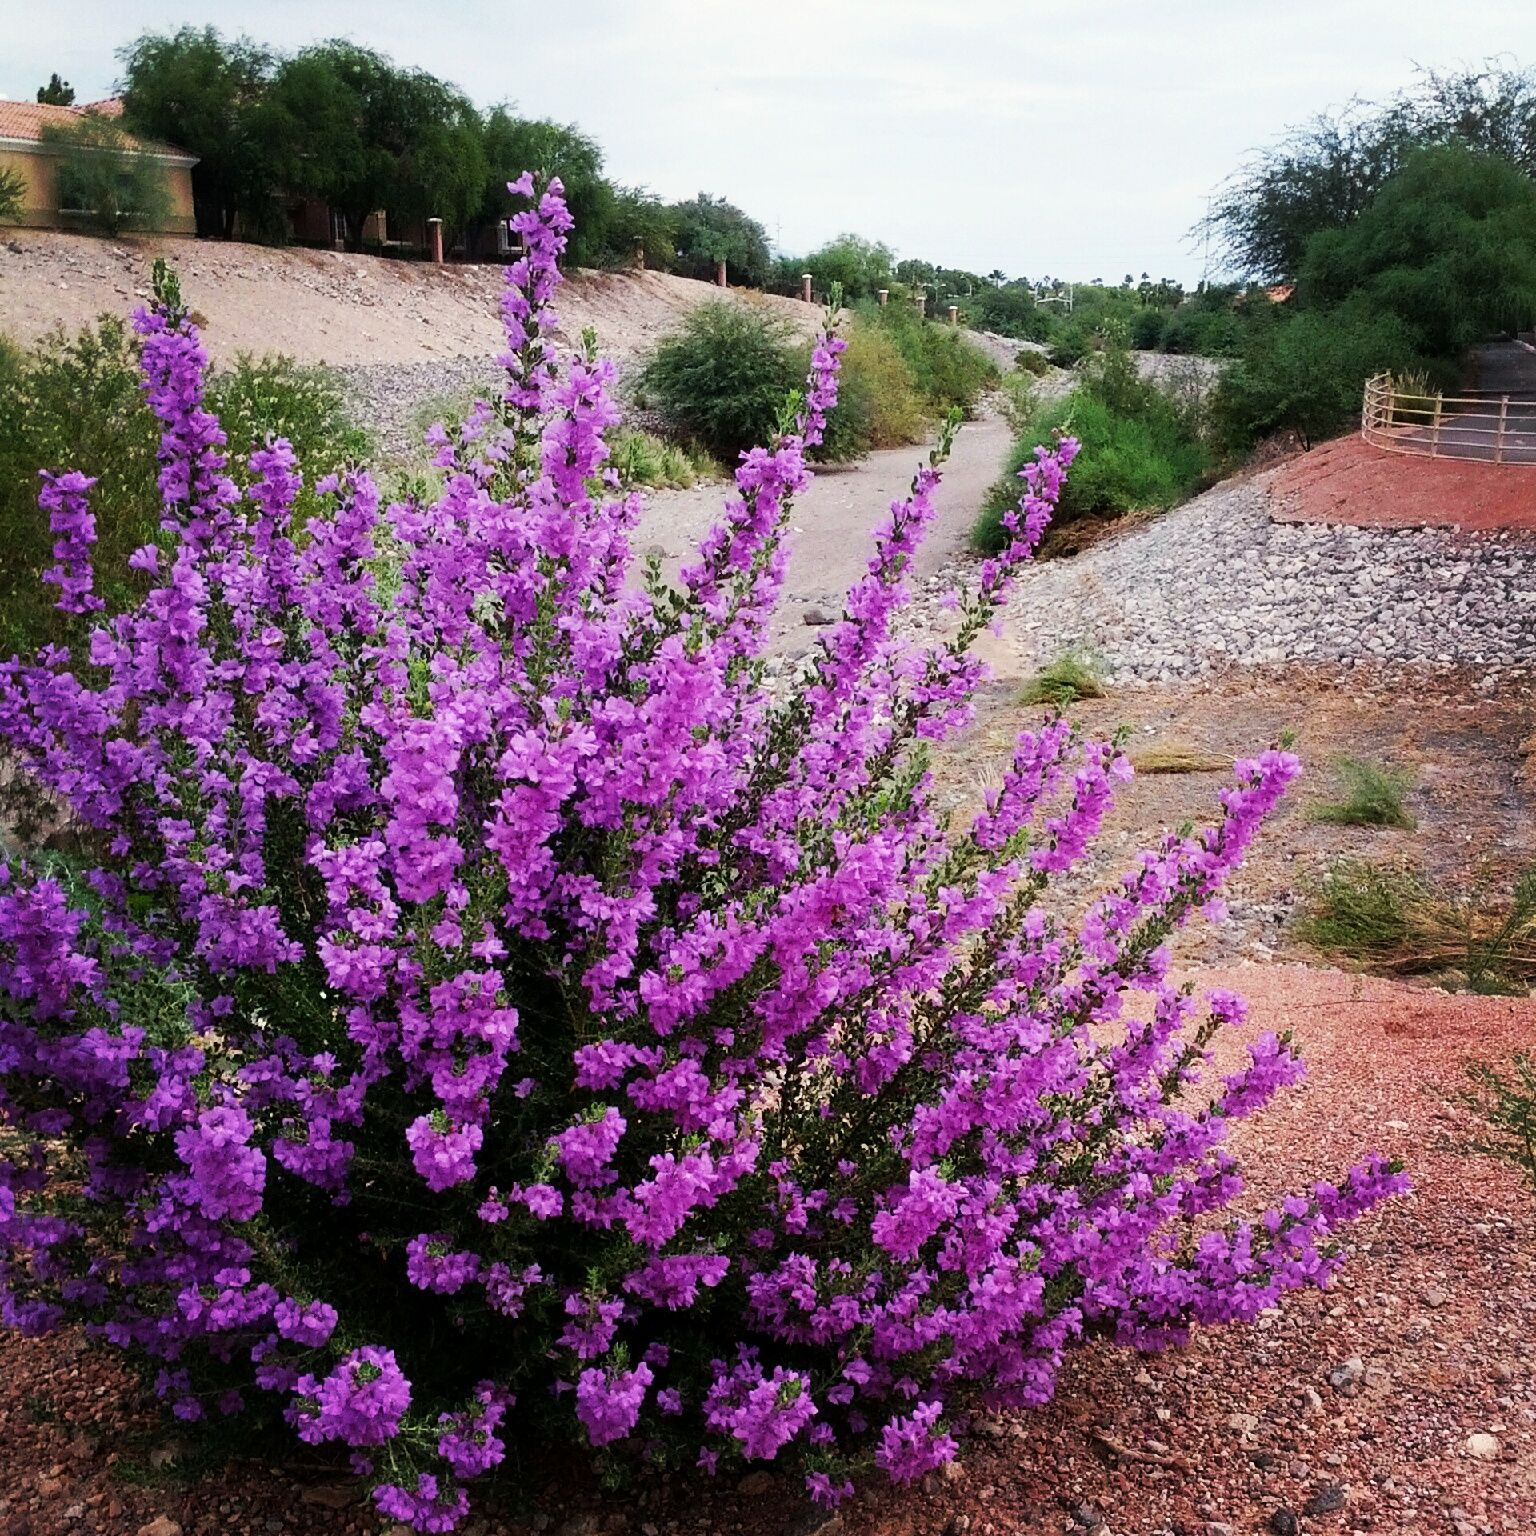 Shrubs with purple flowers at end of branch - Flowering Shrubs Garden